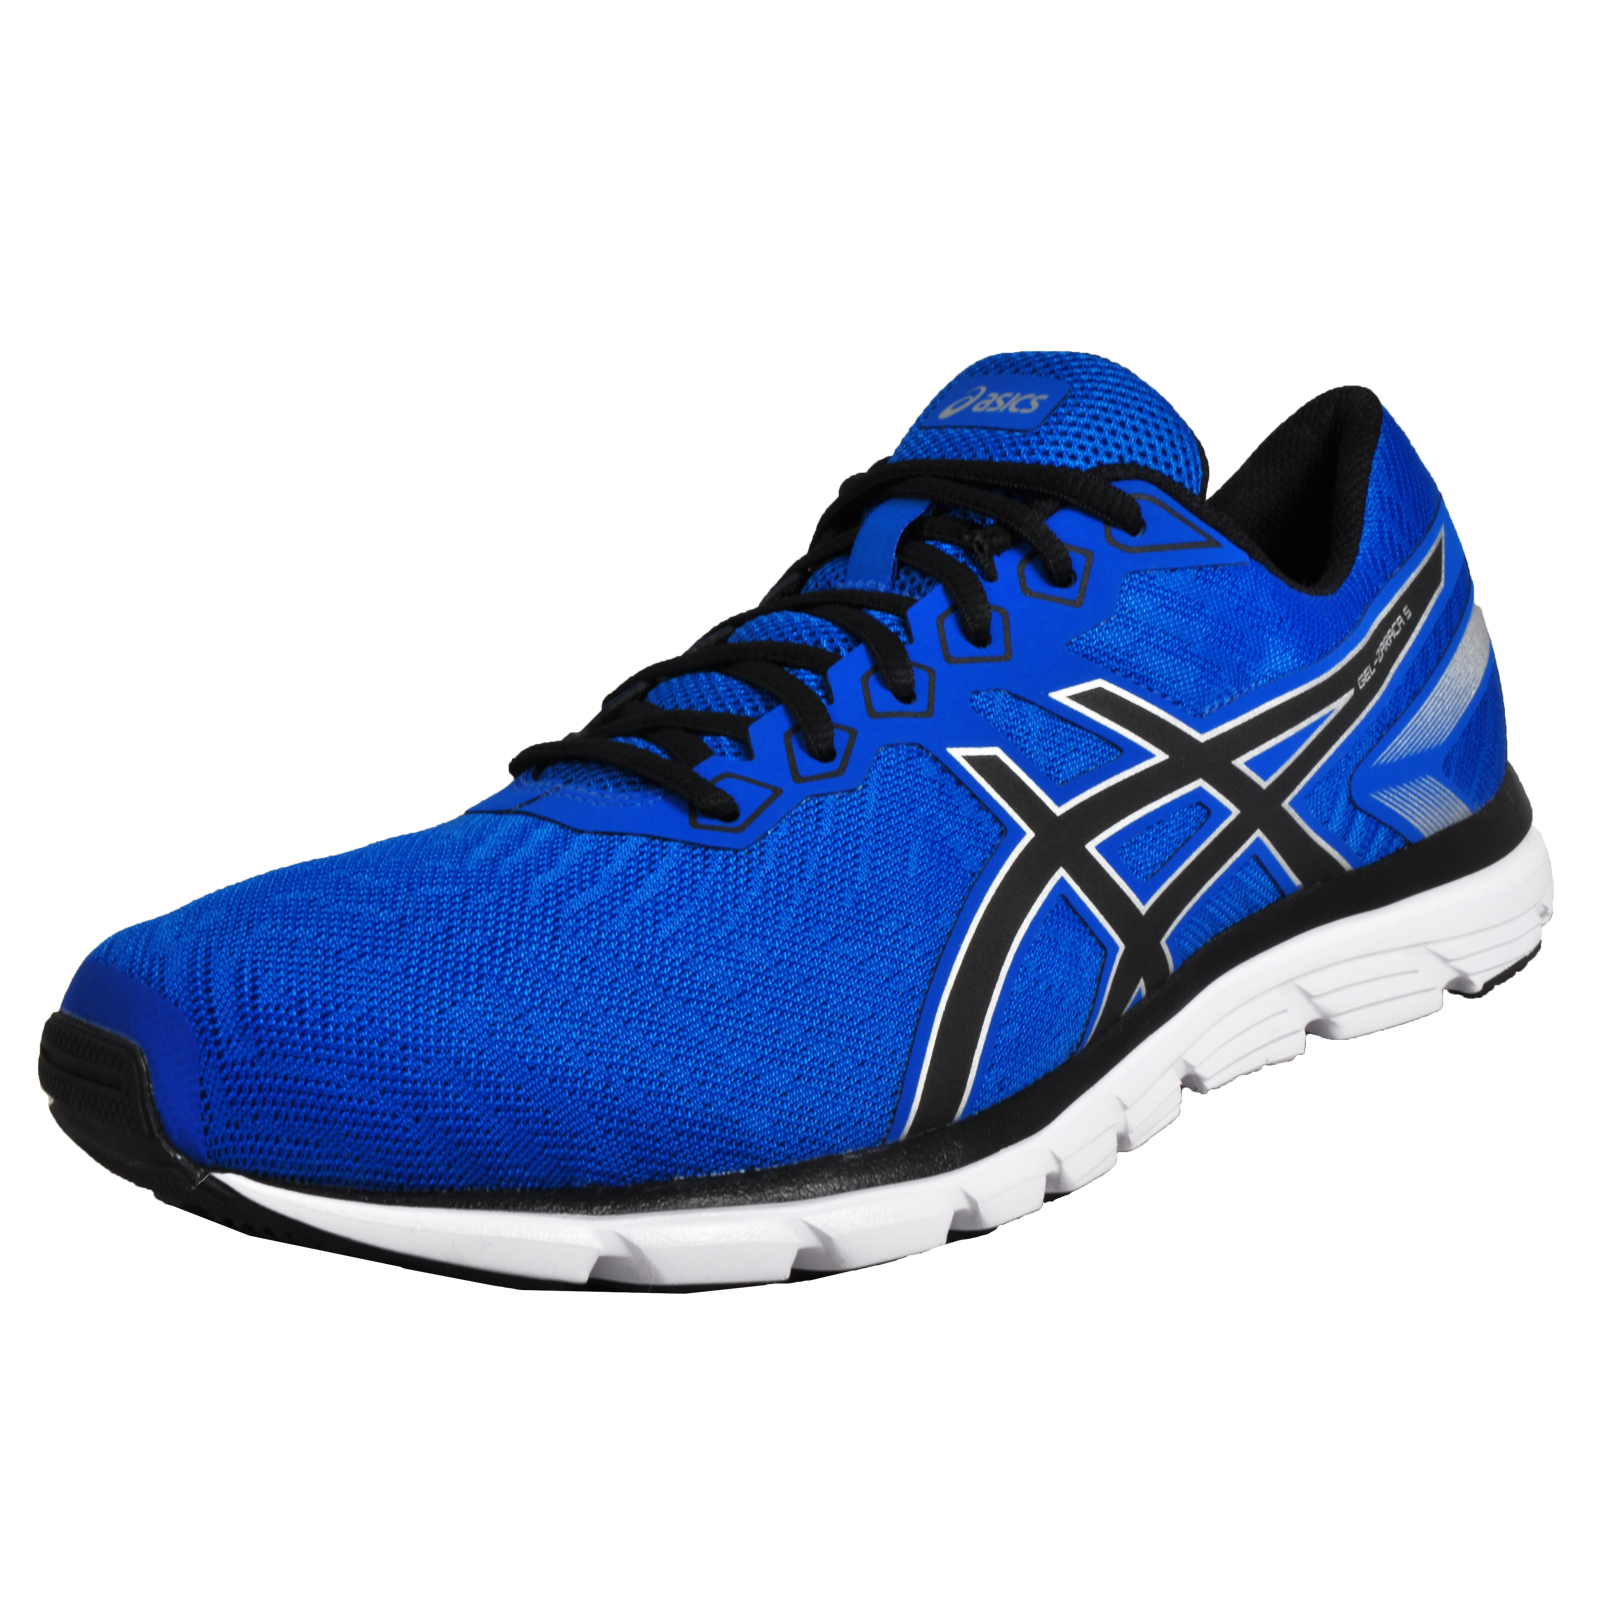 Asics Gel Zaraca 5 Mens Running Shoes Fitness Gym Trainers Blue